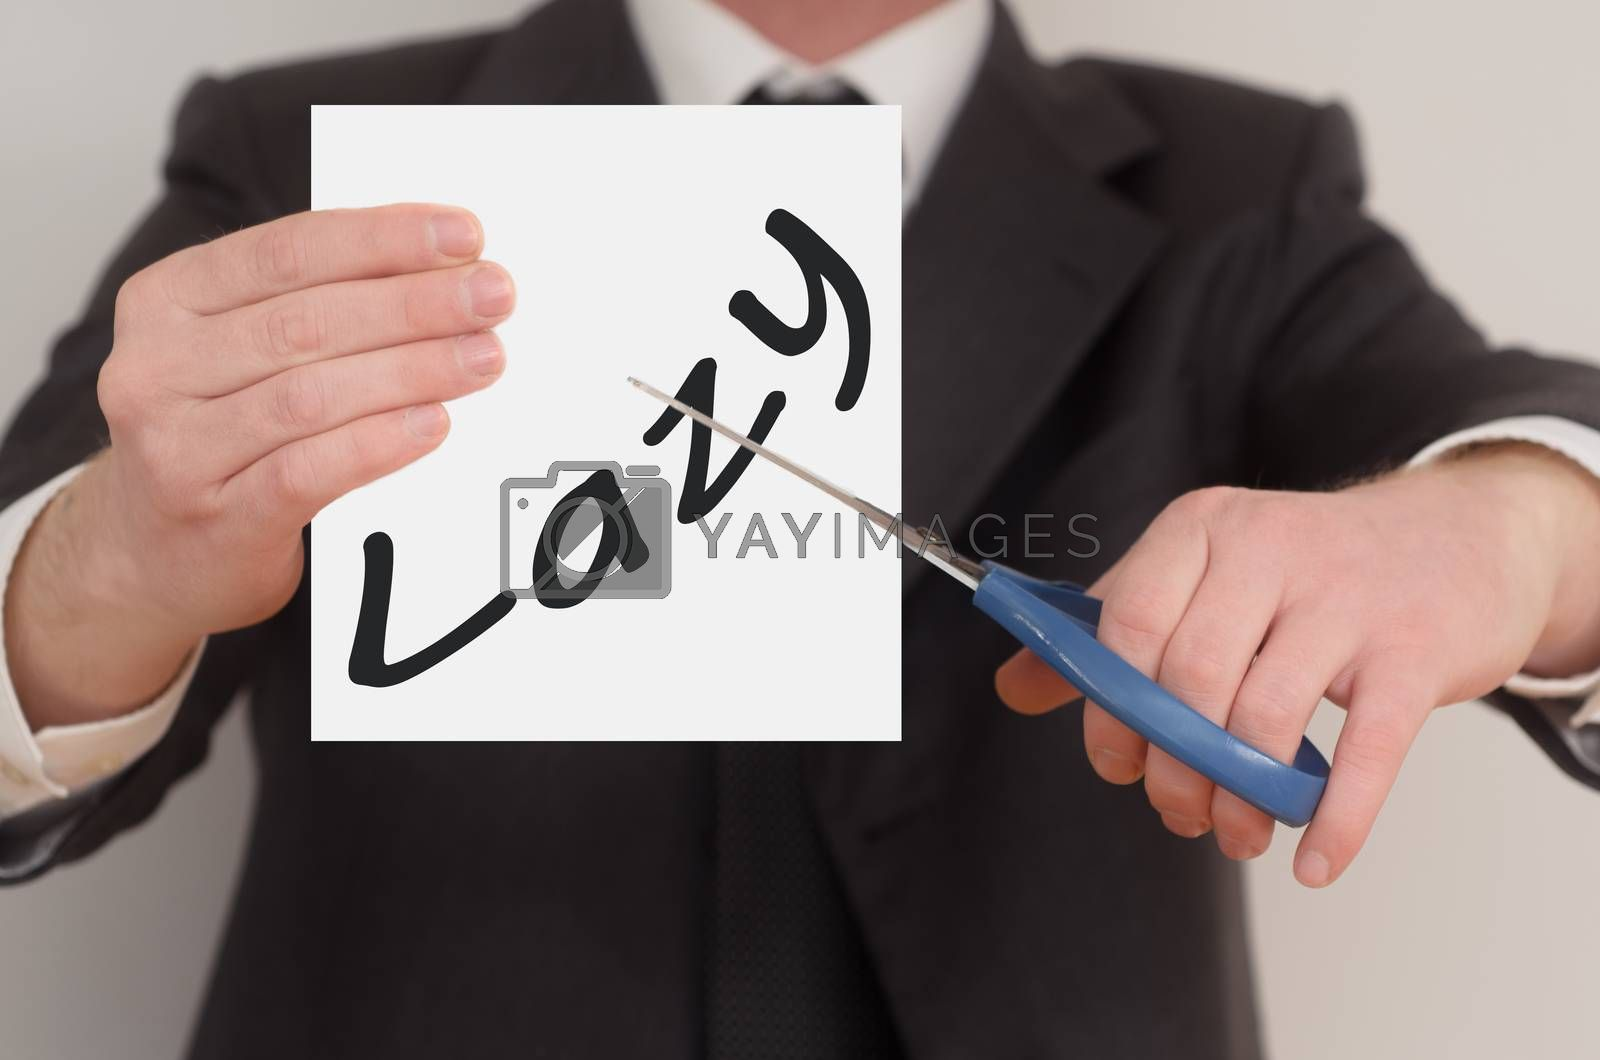 Lazy, man in suit cutting text on paper with scissors